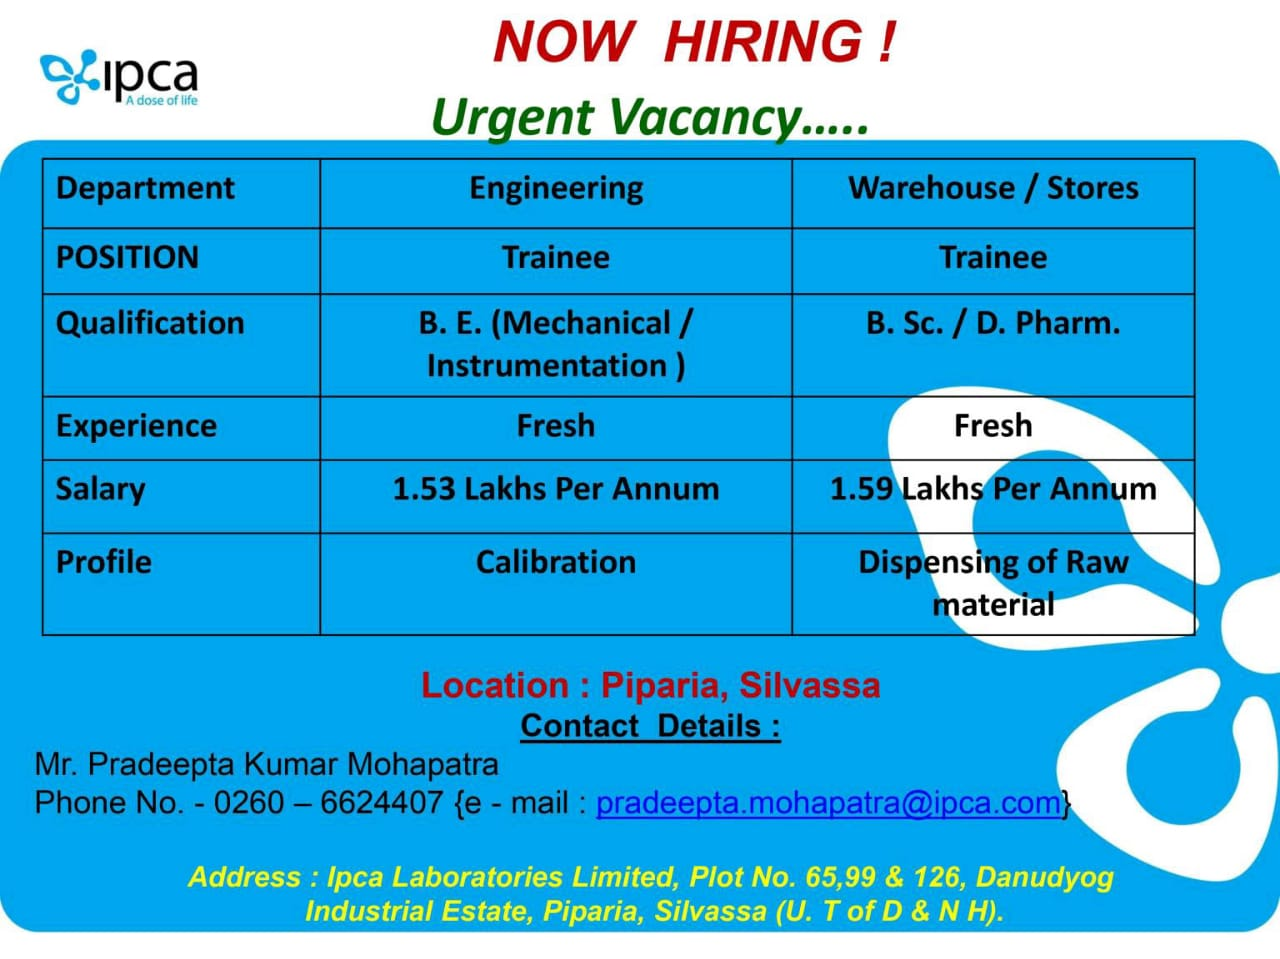 Ipca Laboratories - Urgent Vacancy for Freshers - Engineering / Warehouse / Stores Department